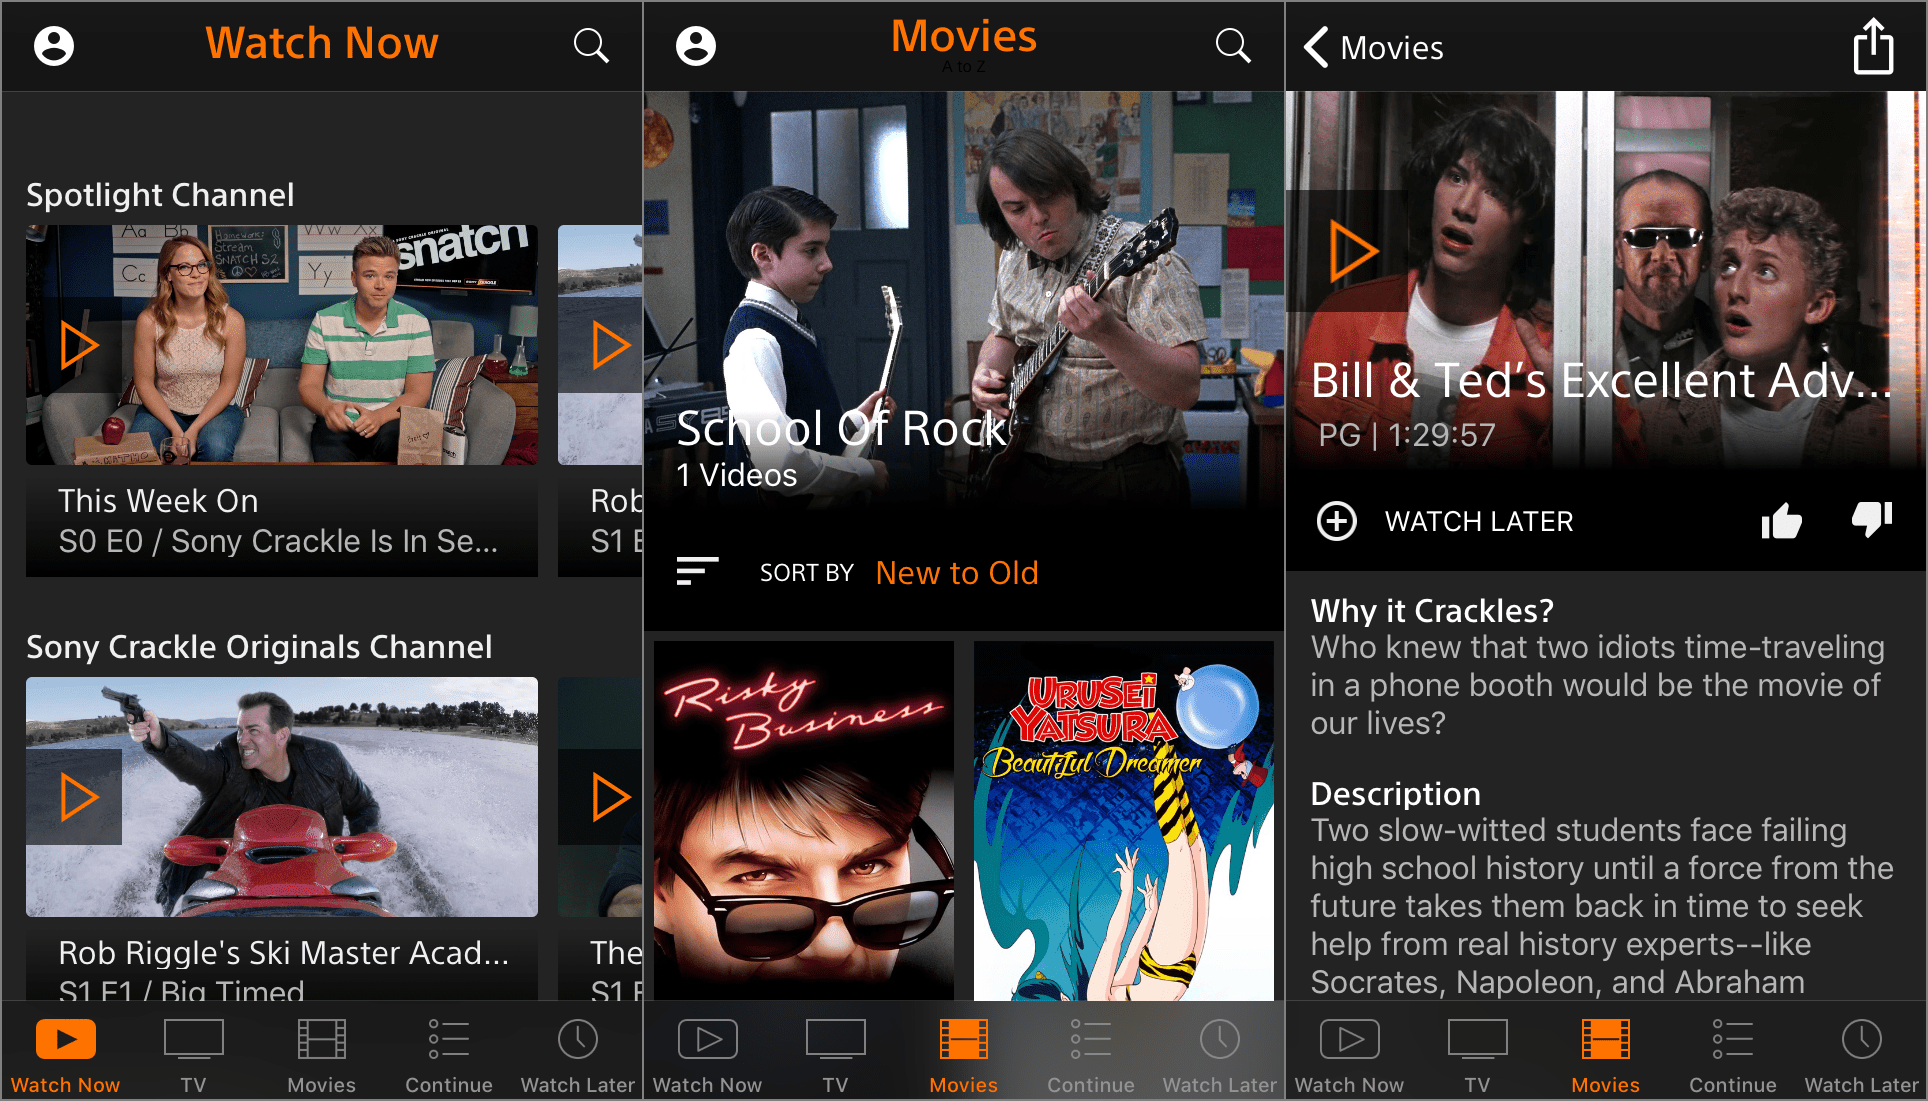 Download These Free Apps to Watch Free Streaming Movies on the Go